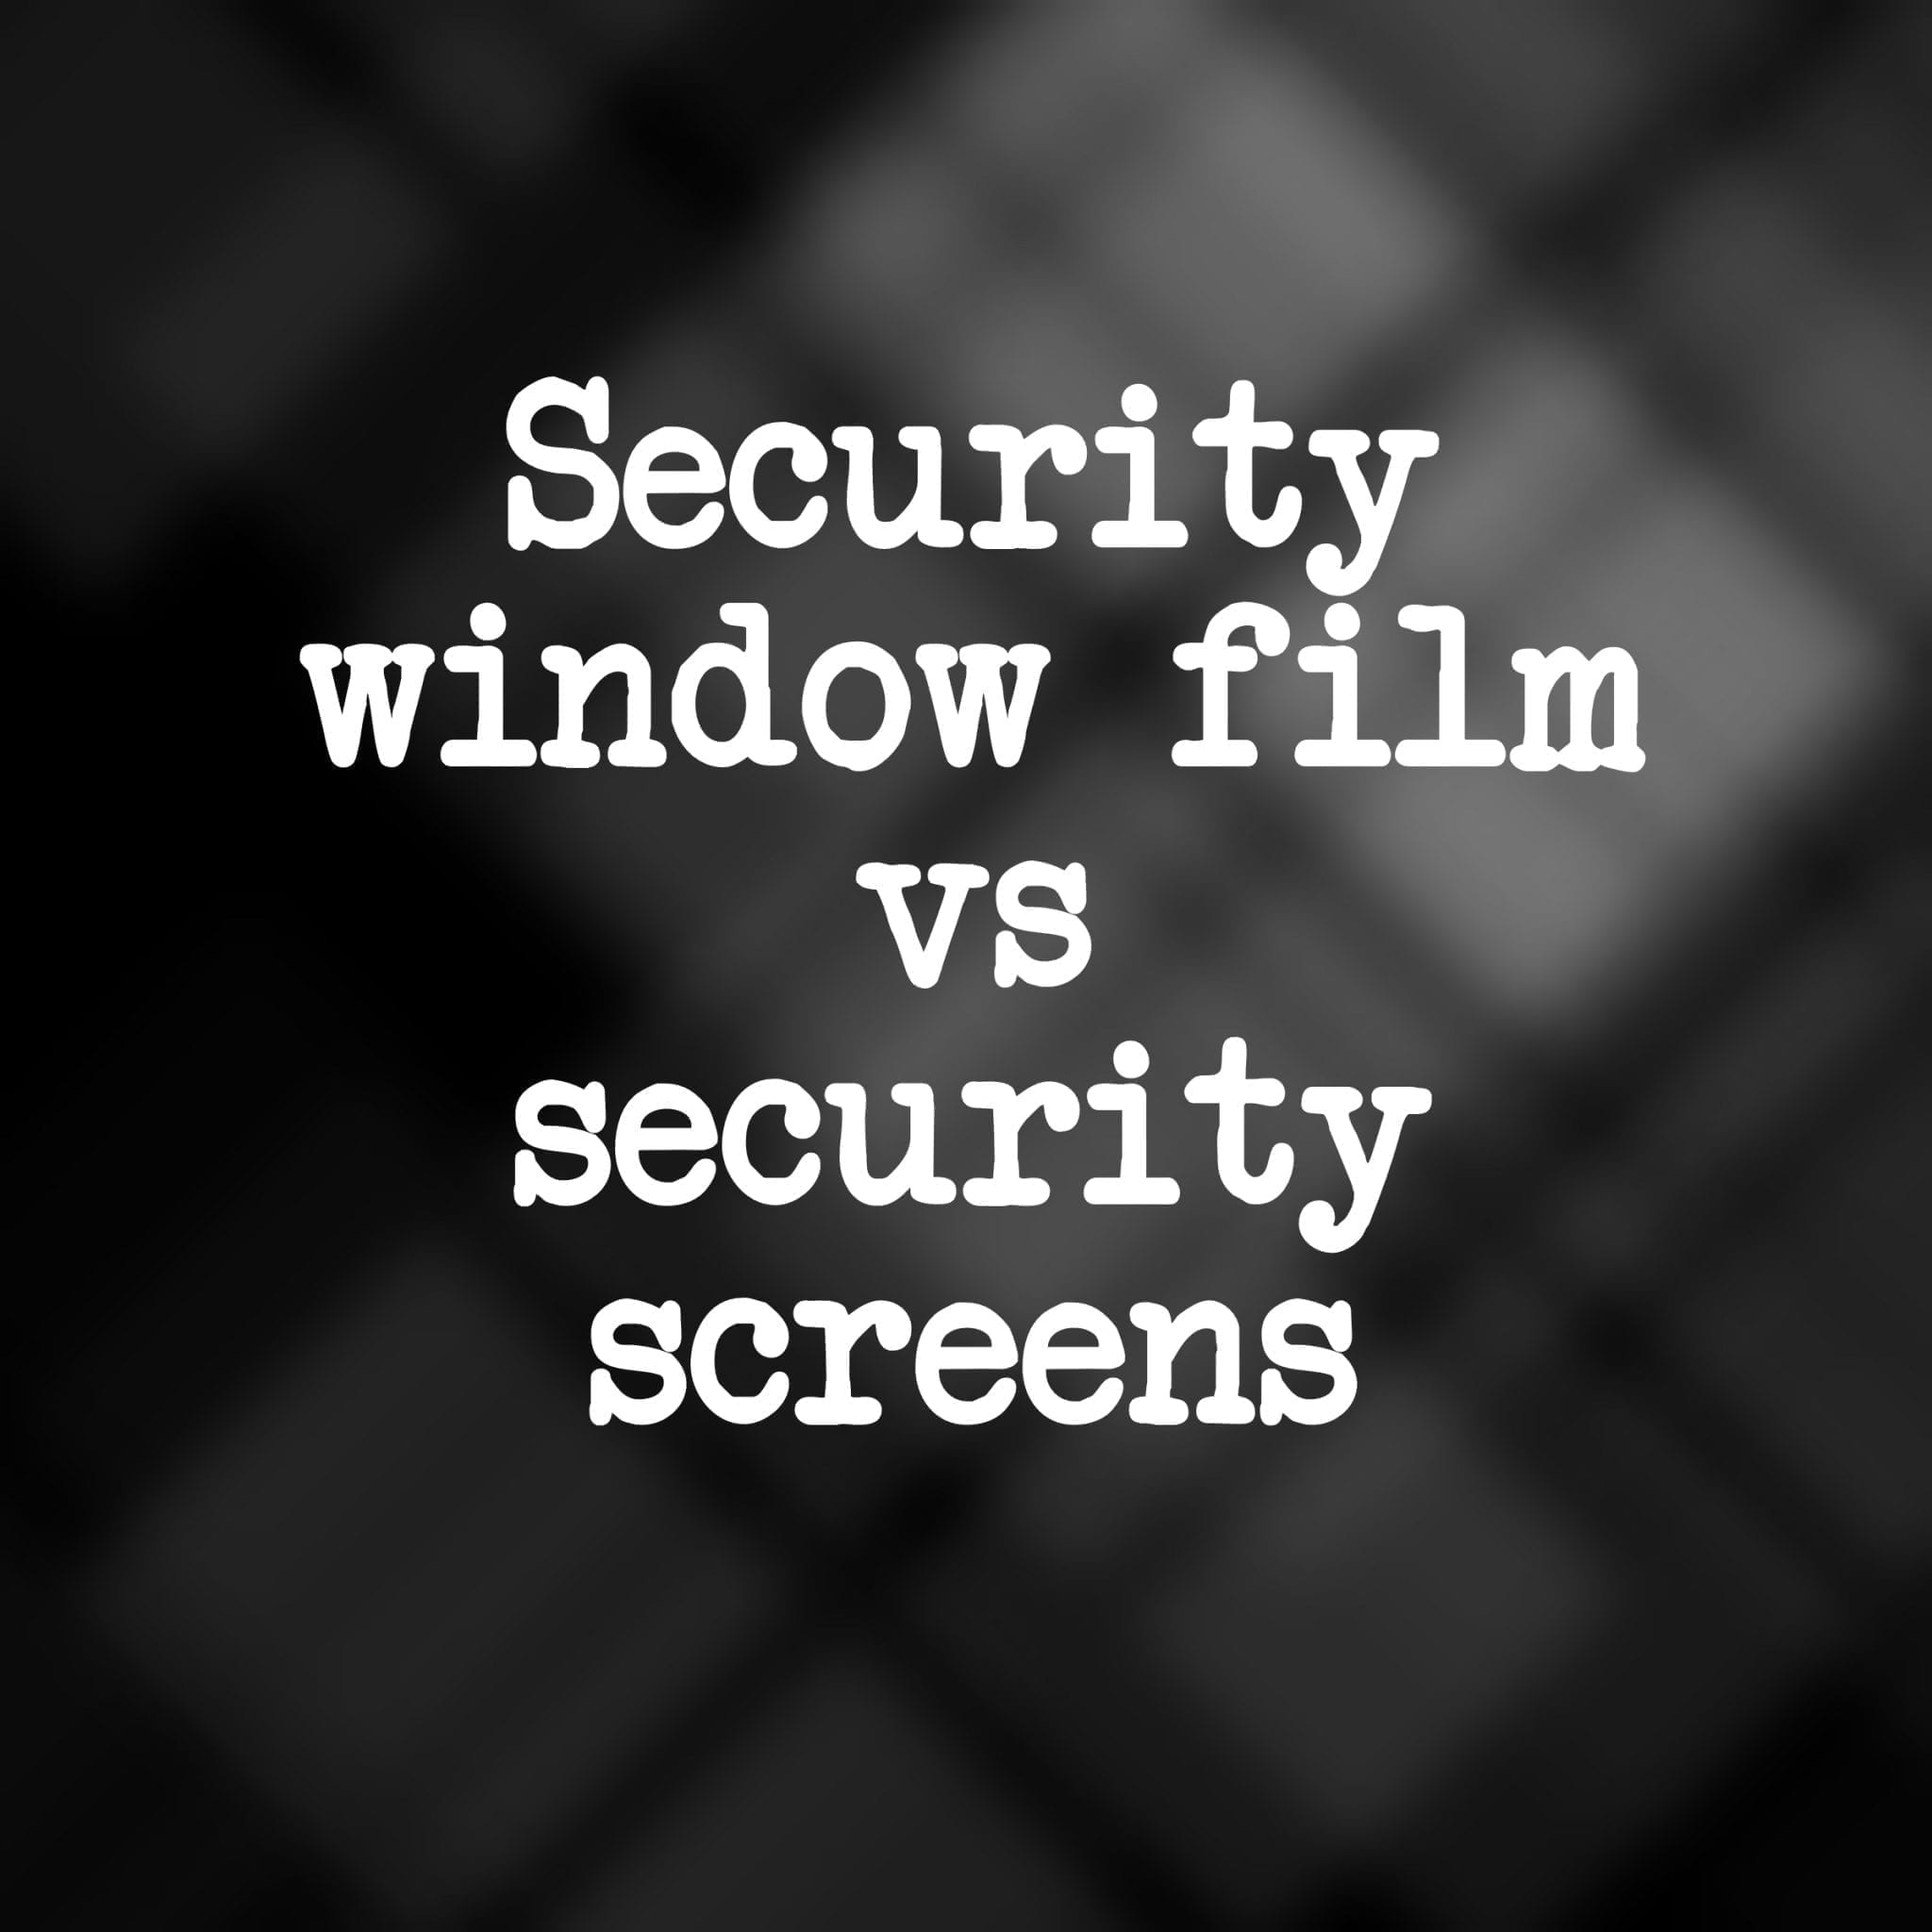 Security film vs security screens